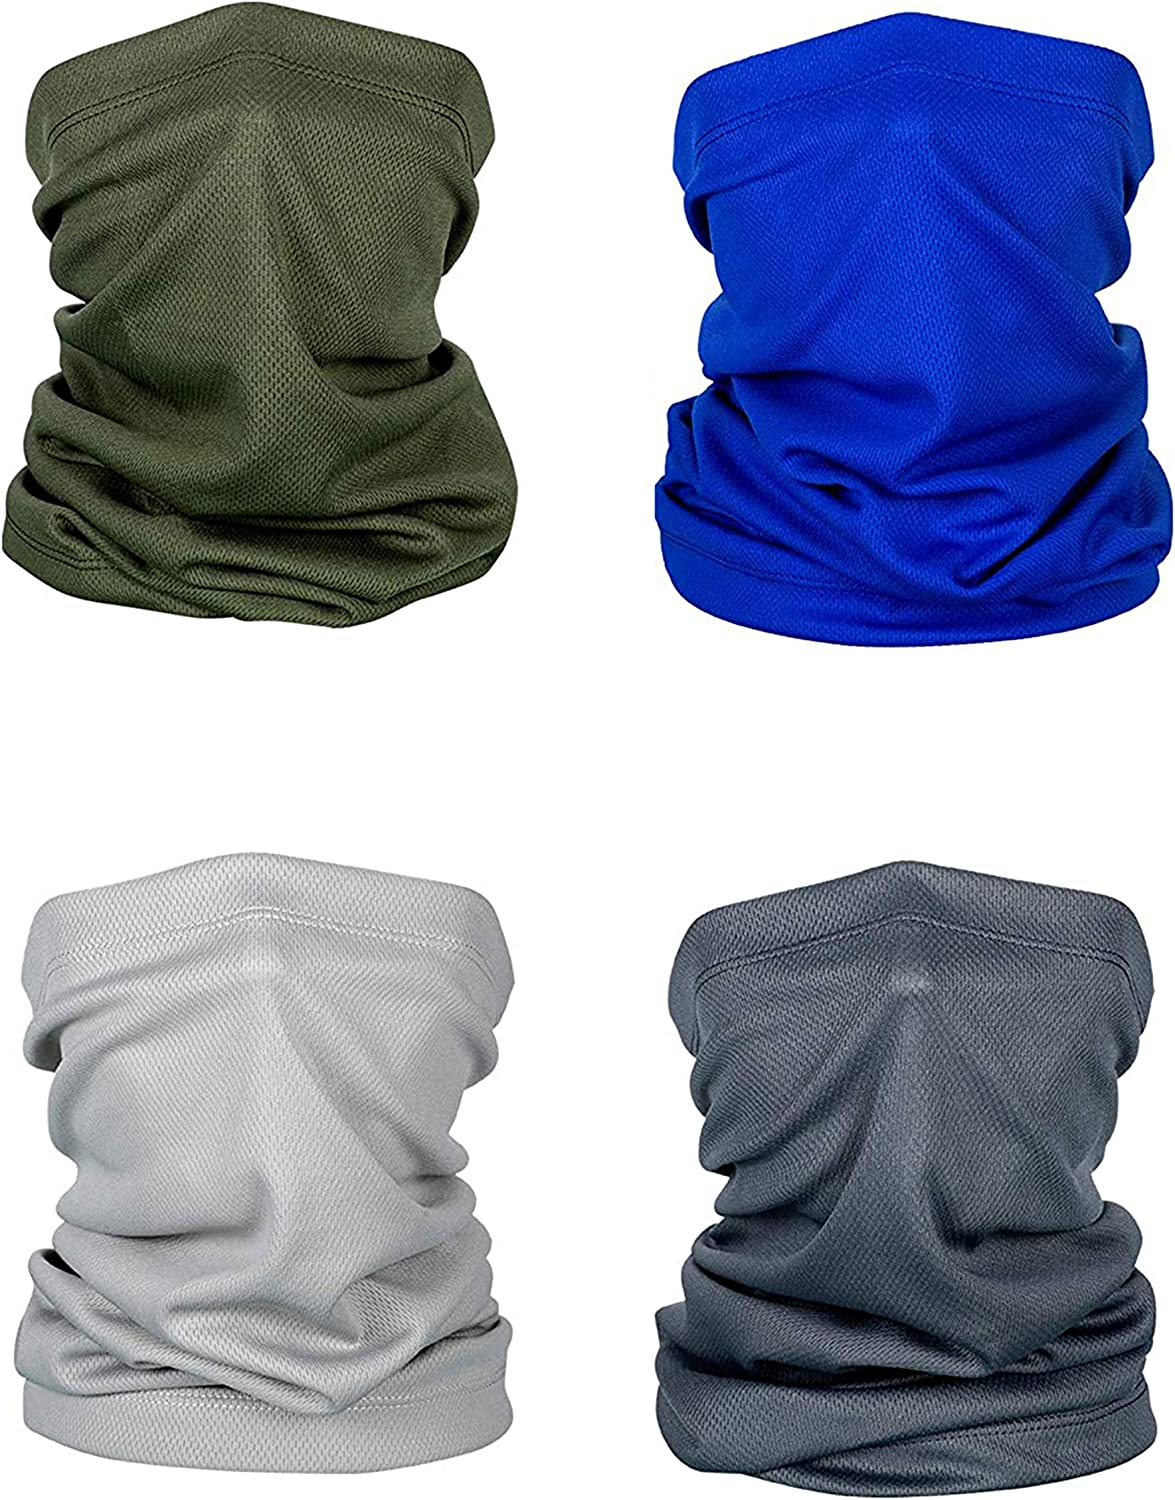 Neck gaiter face scarf New arrival used headscarf Multifunctional windproof New Free Shipping